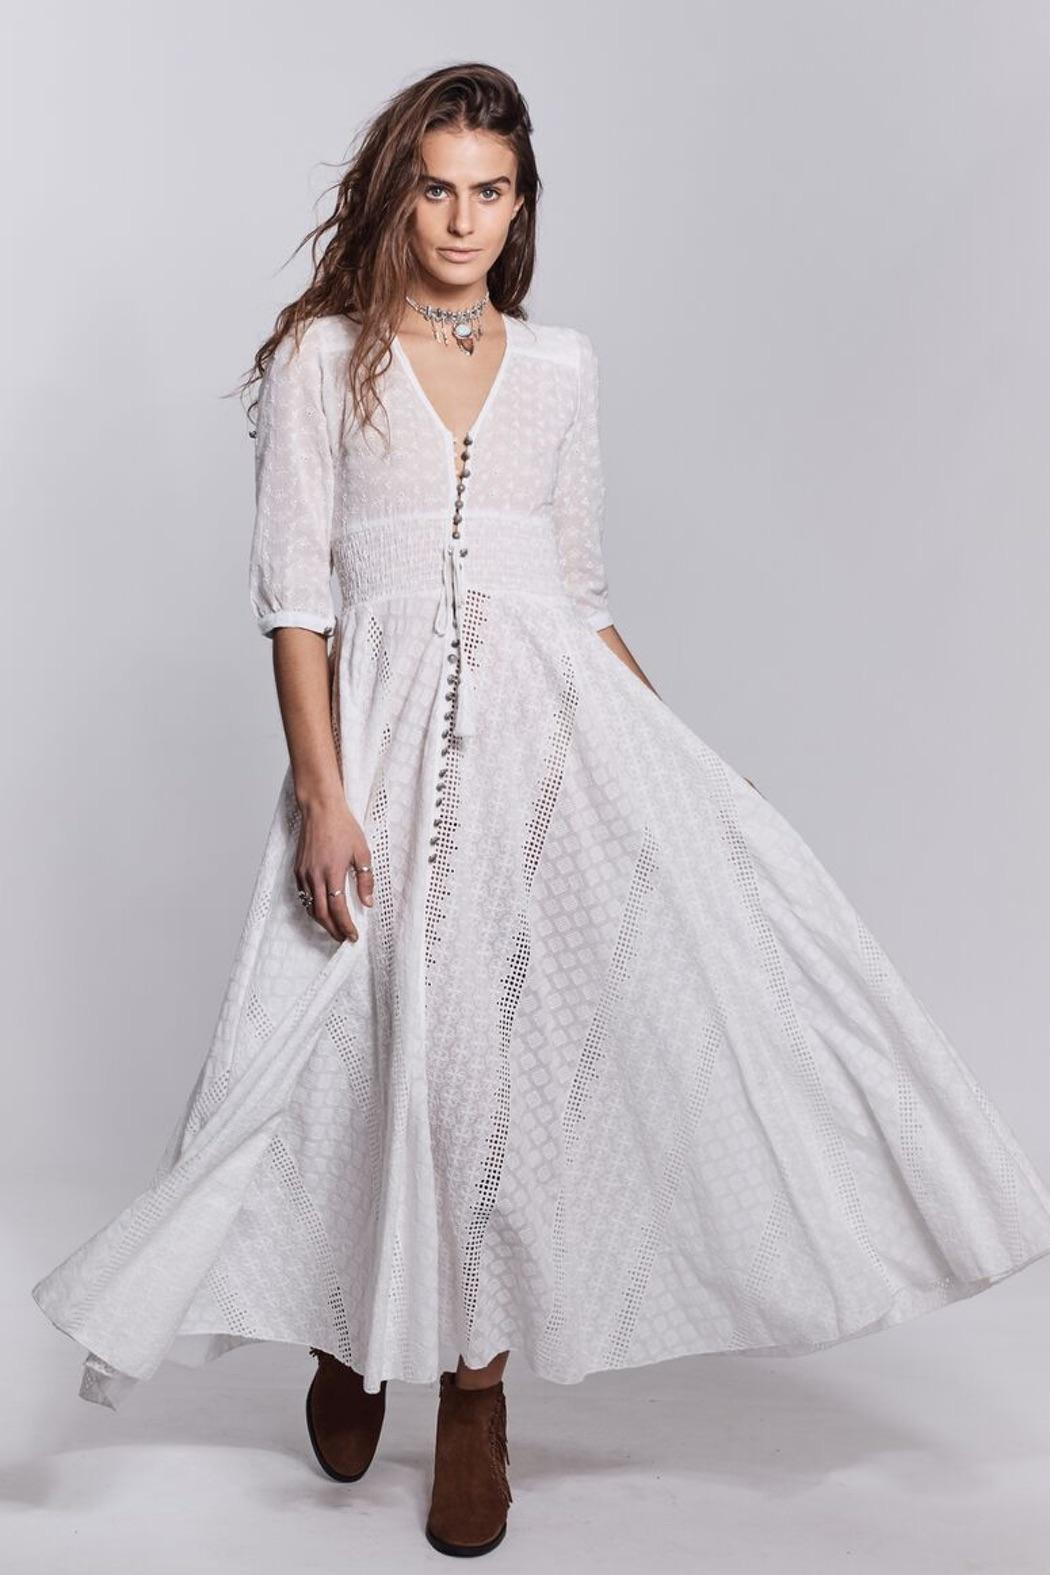 Jaase White Bohemian Dress from Queensland by White Bohemian  Shoptiques